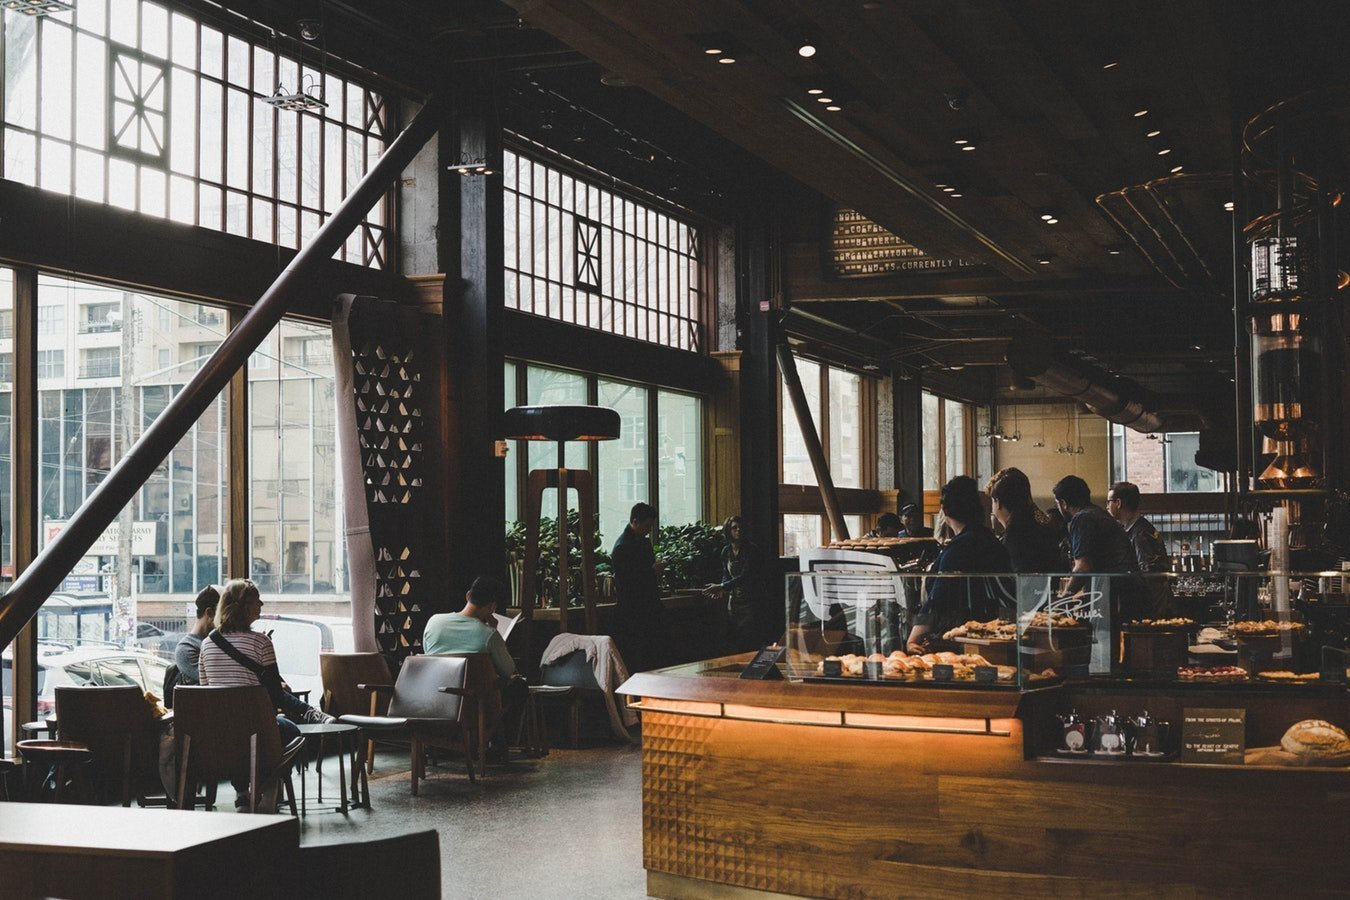 Top 10 Sights to See in Seattle: Starbucks Reserve Roastery